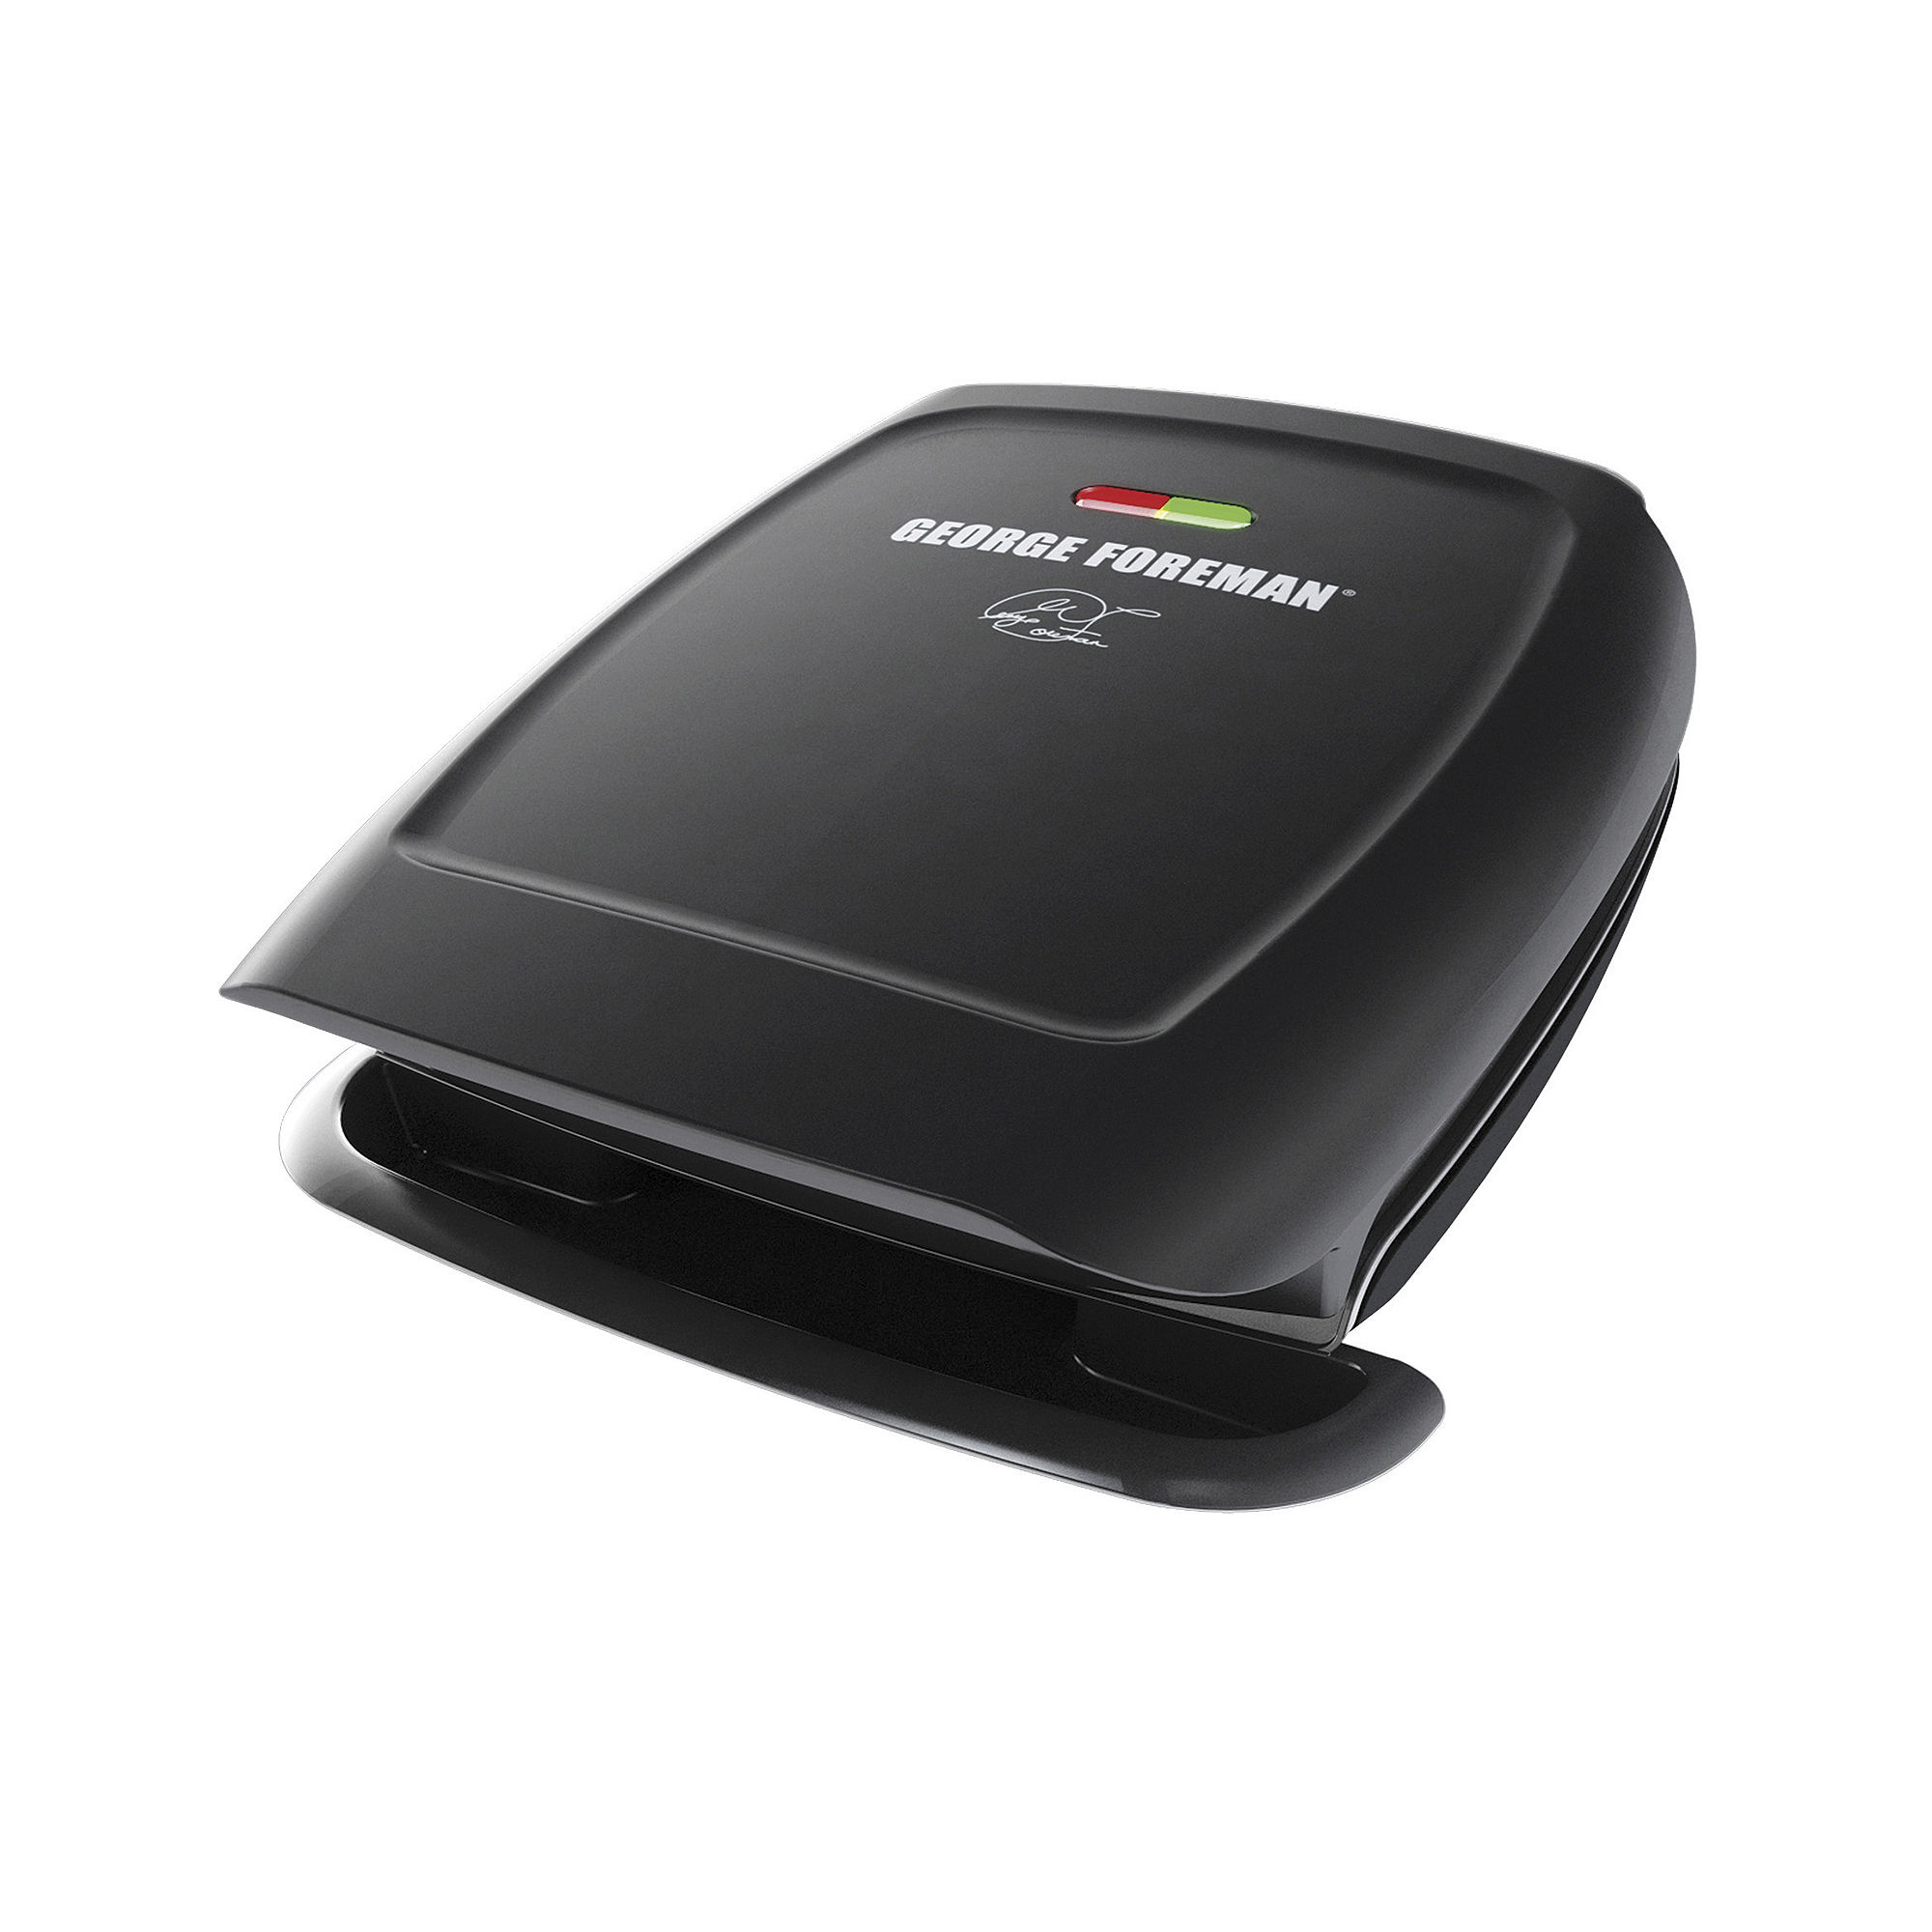 George foreman grp4 next grilleration 4 burger grill with - Largest george foreman grill with removable plates ...